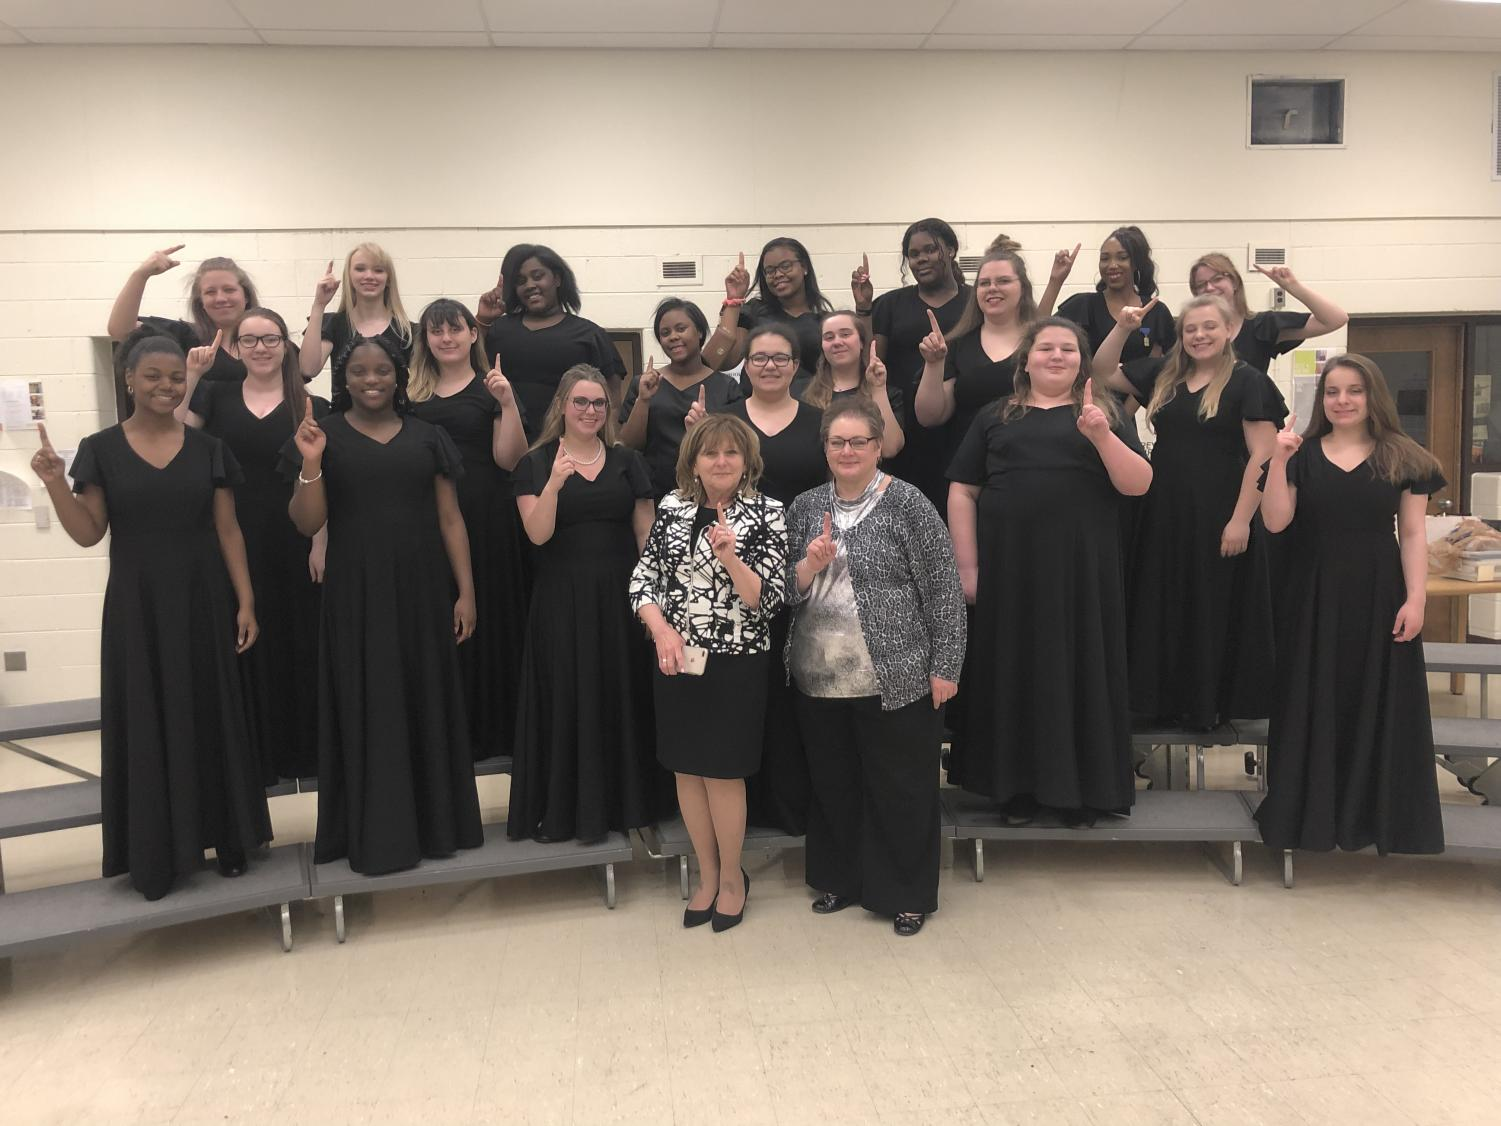 Chanson choir received a 1 at State Solo and Ensemble and choir director Tina Collins could not be more proud.